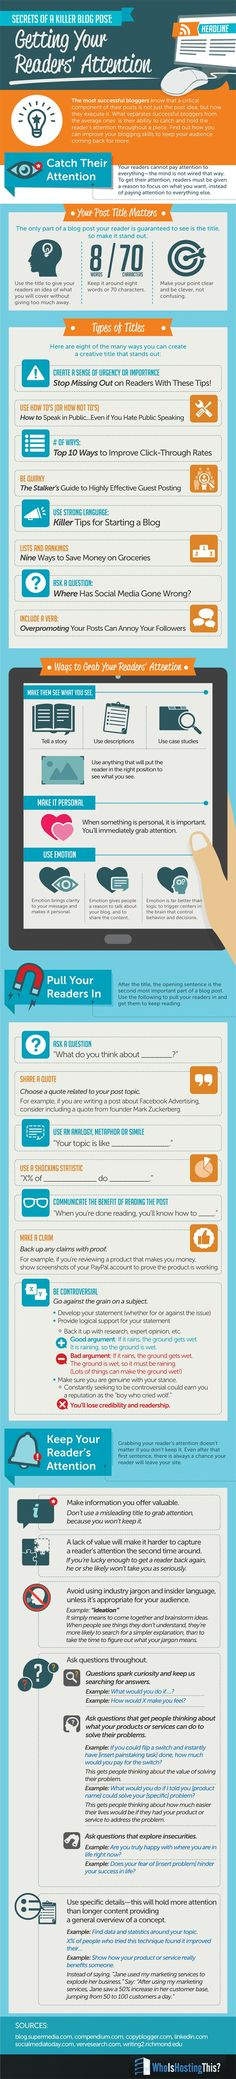 31 Amazing Blogging Tips that Will Grab Your Readers Attention